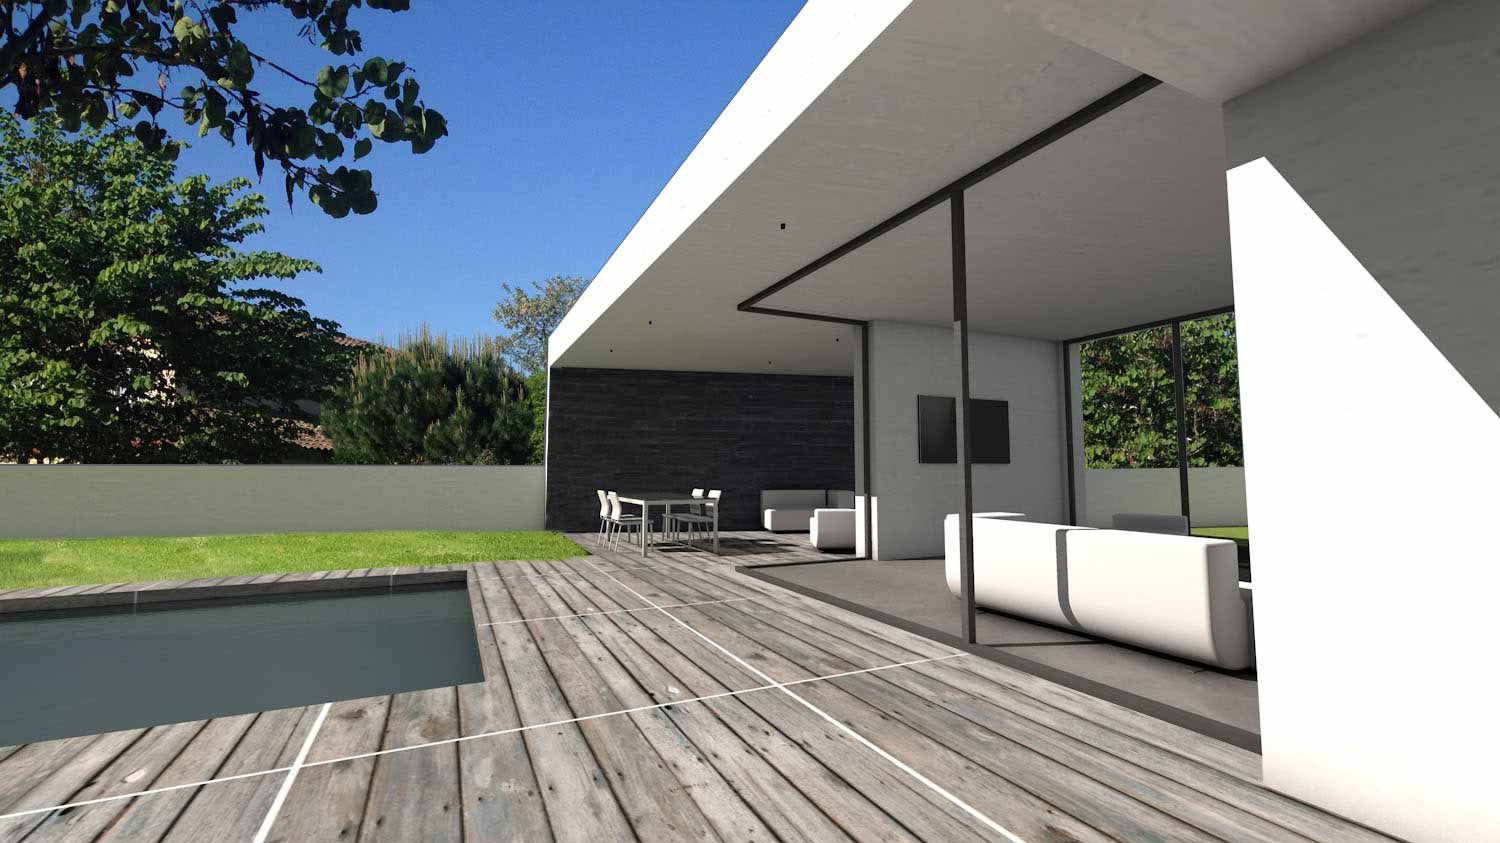 Atelier d 39 architecture sc nario maison contemporaine d for Architecture maison moderne